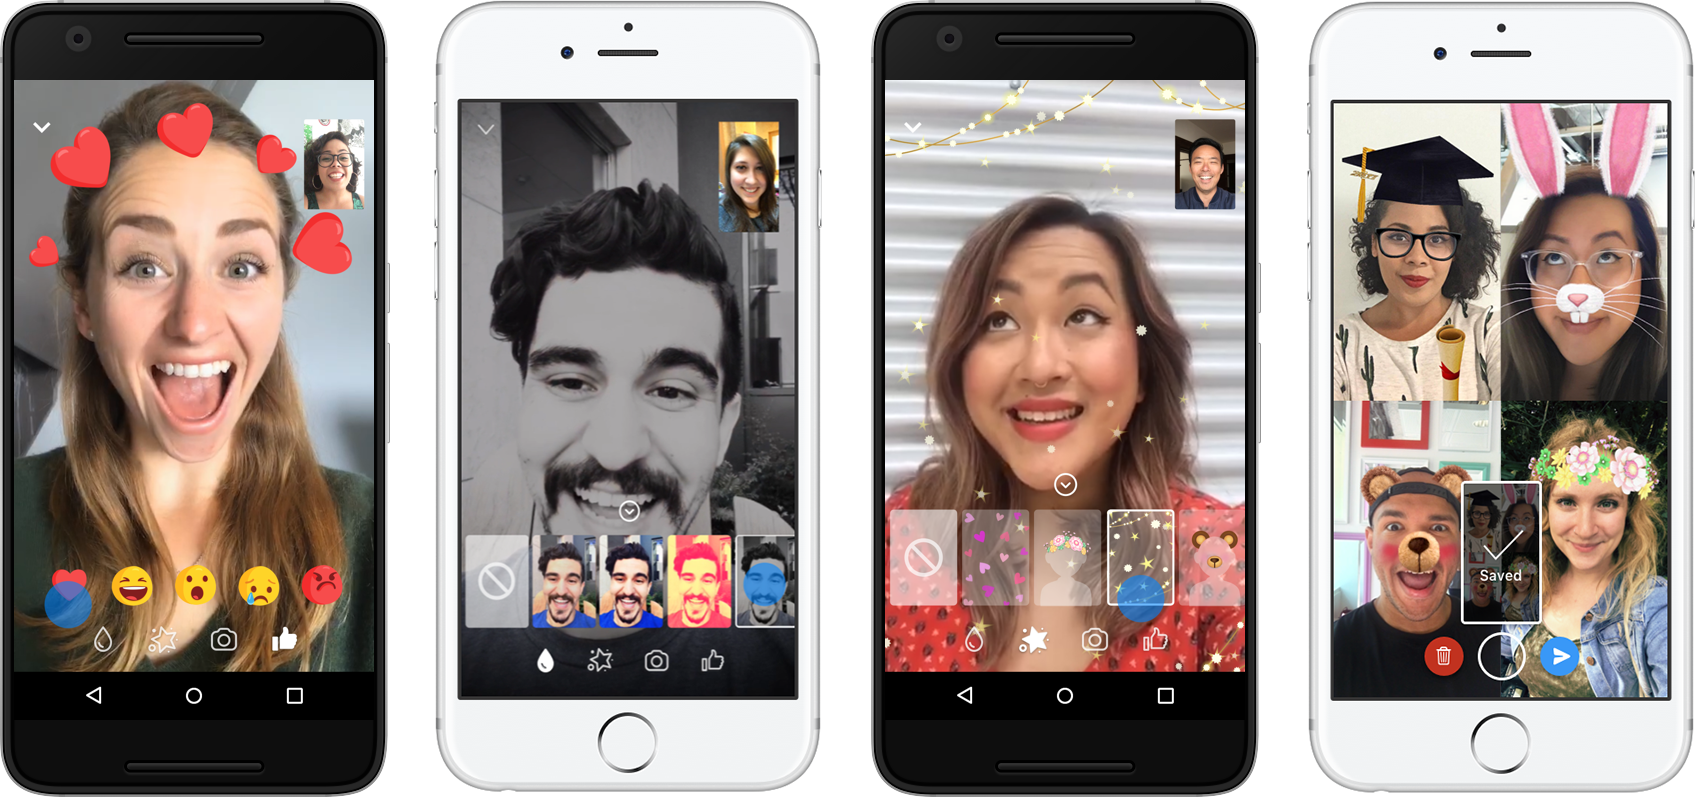 Facebook reminds you Messenger video chat exists with new effects